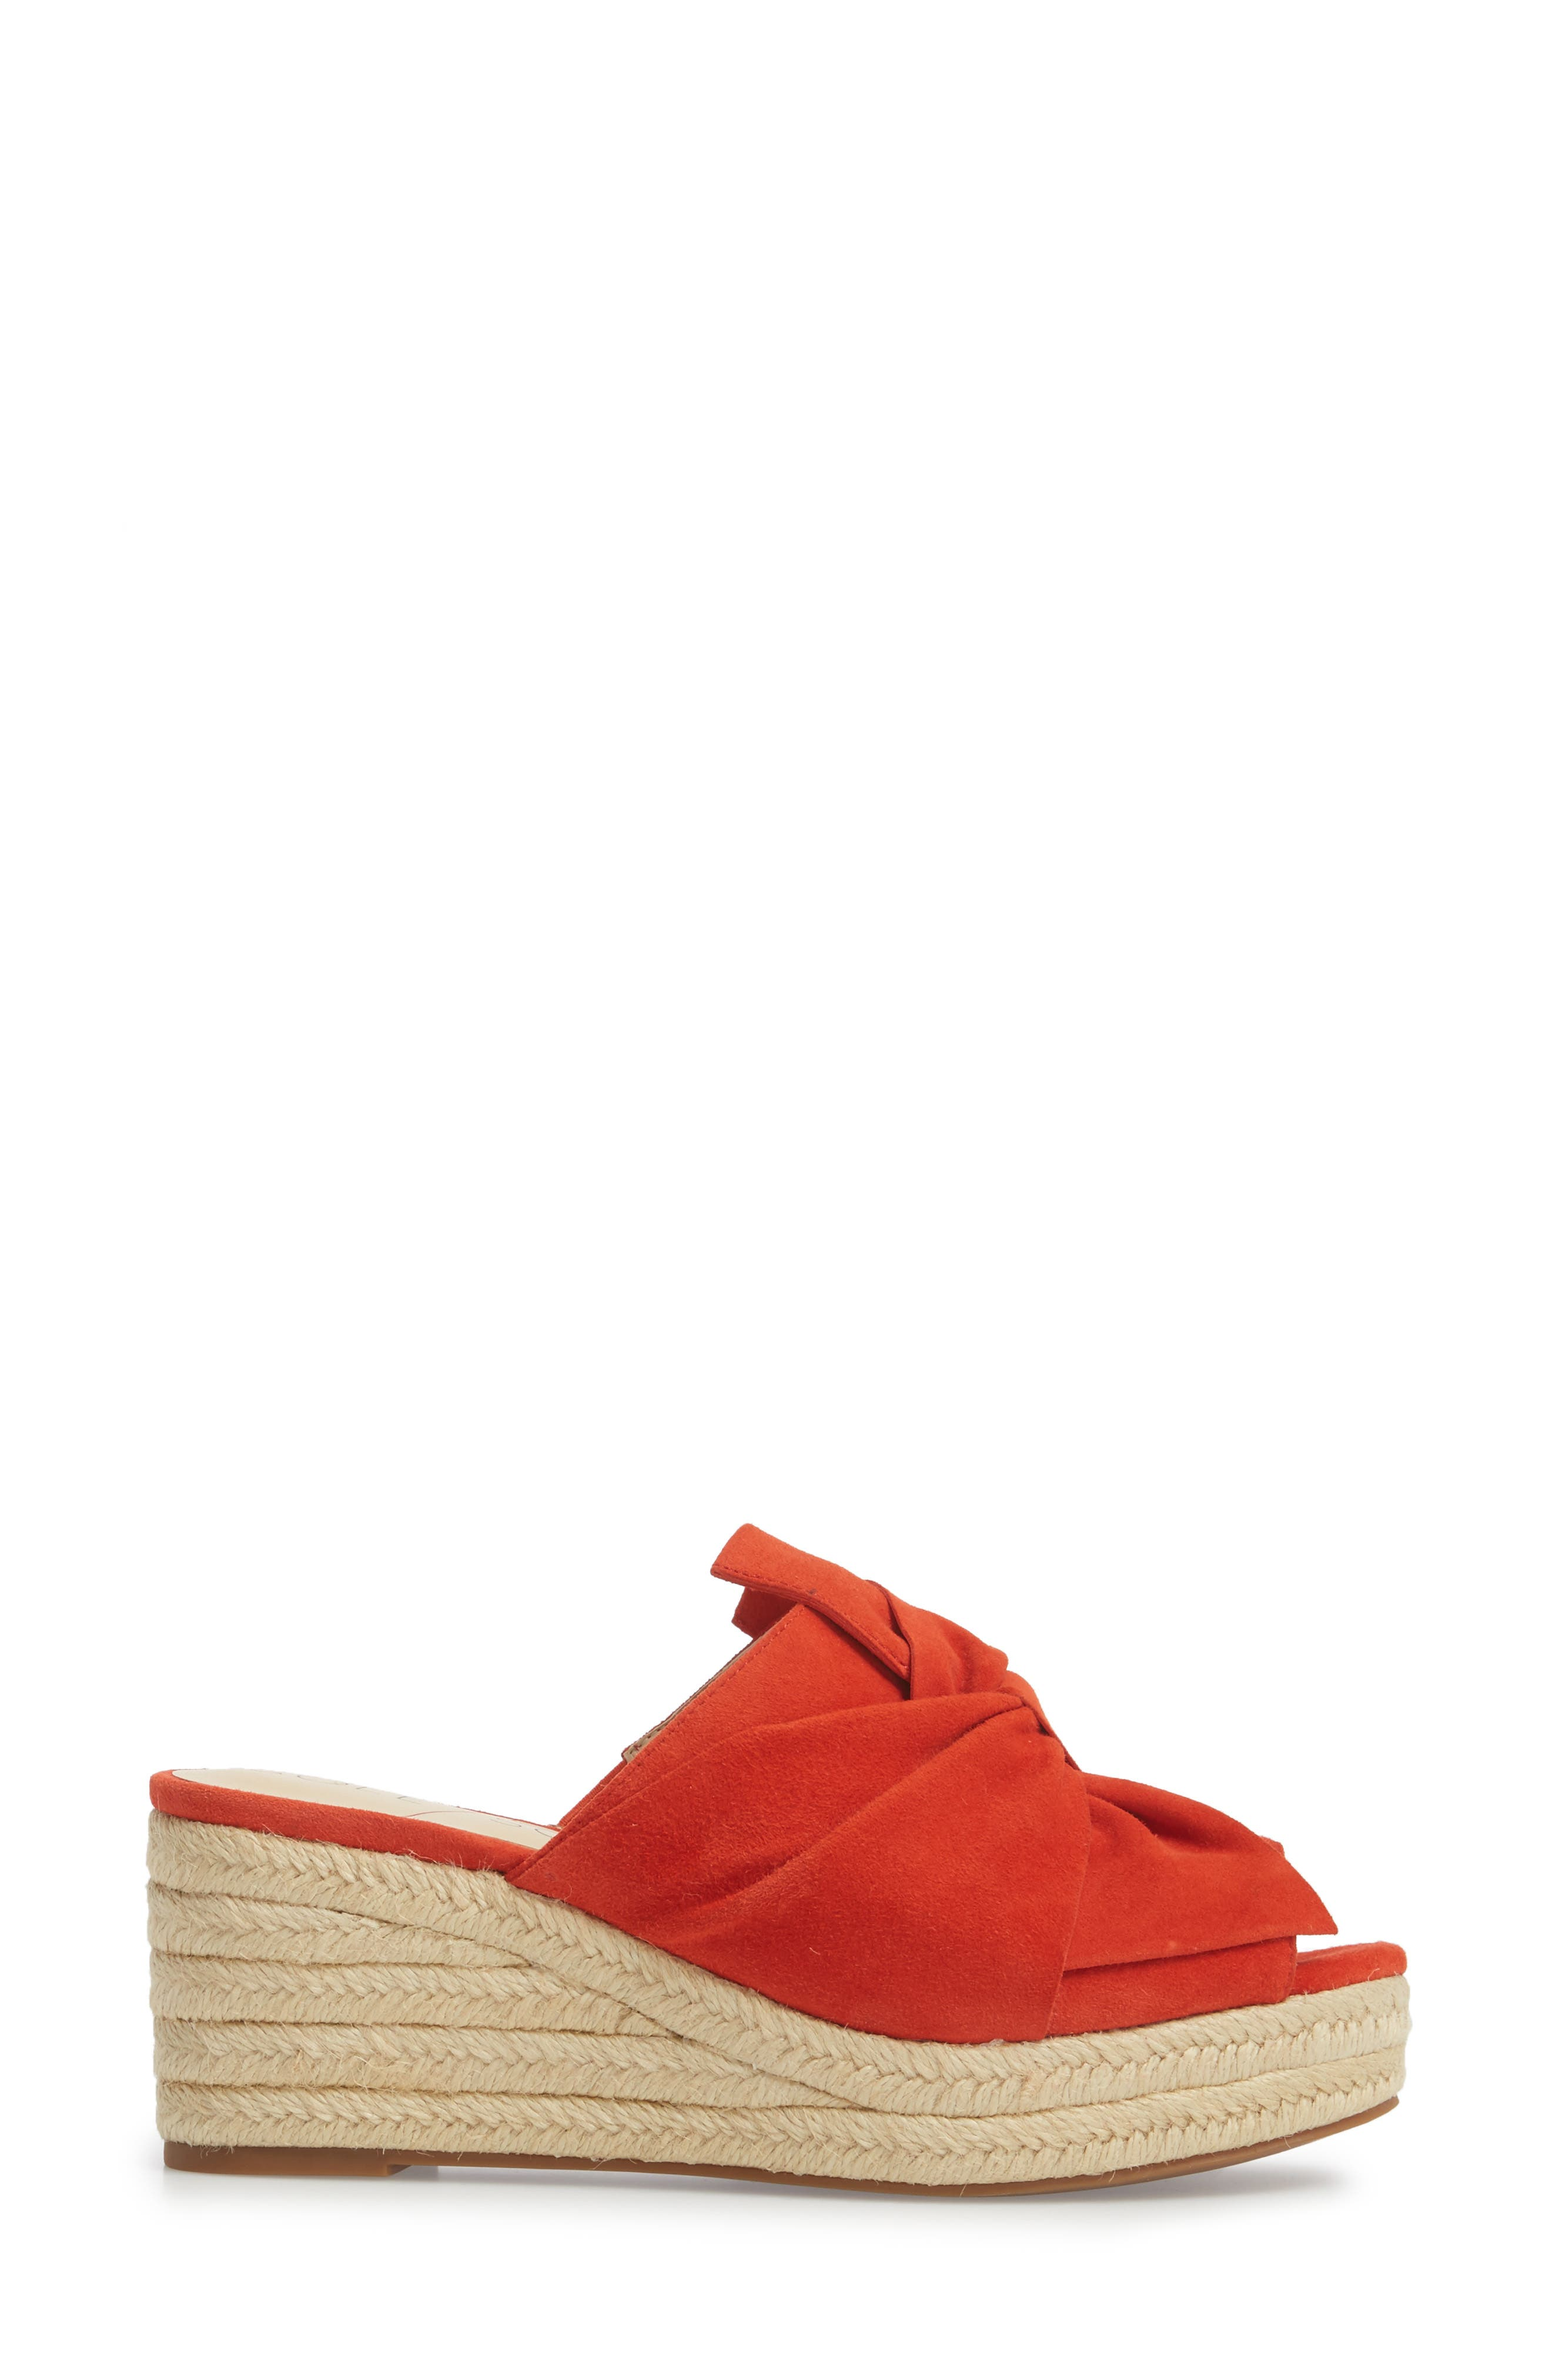 Carima Espadrille Wedge,                             Alternate thumbnail 3, color,                             Bright Coral Suede